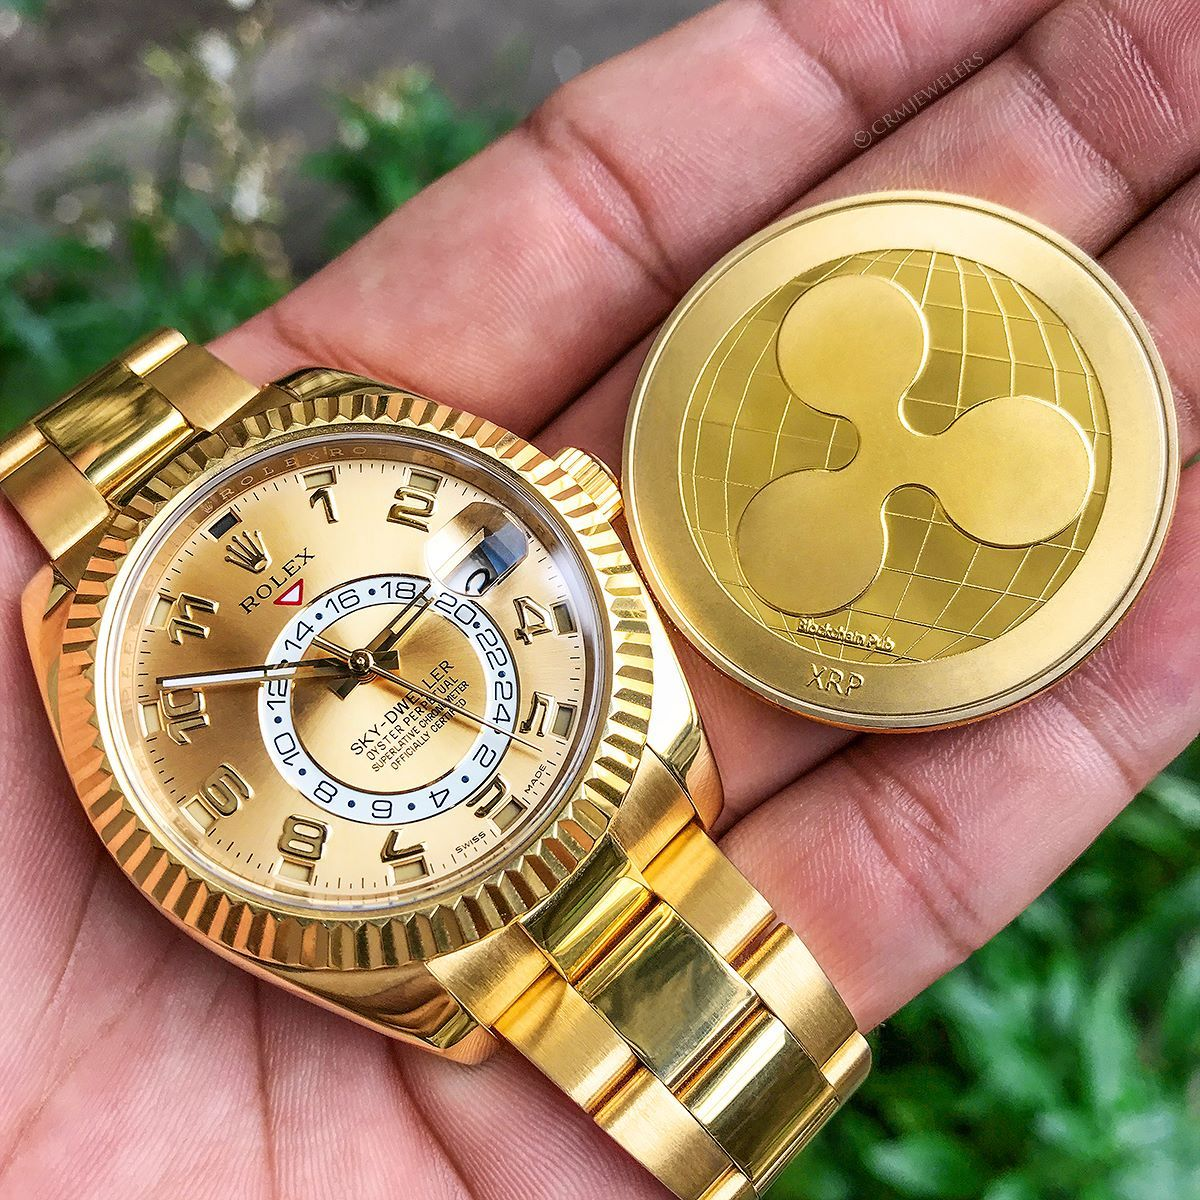 Sky Dweller 33000 Ripple By Cryptoplayhouse Get Your Ripple From Them Bitcoin Blockchain Wallet Bitcoin Wallet